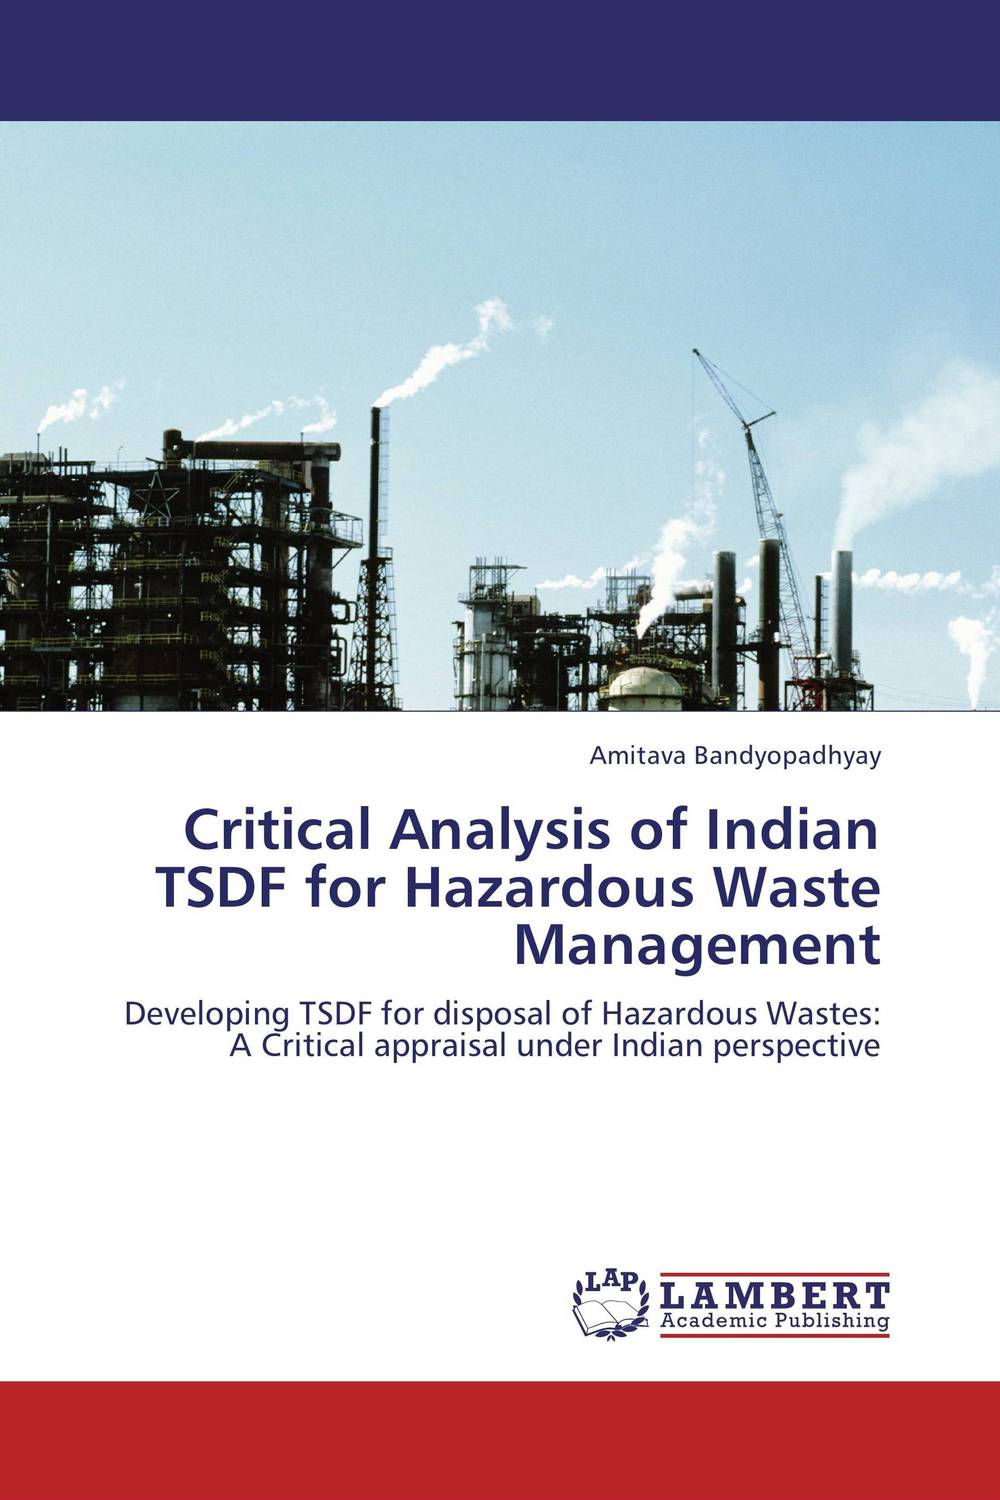 Critical Analysis of Indian TSDF for Hazardous Waste Management prc environmental mgmt s hazardous waste reducation in the metal finishing industry